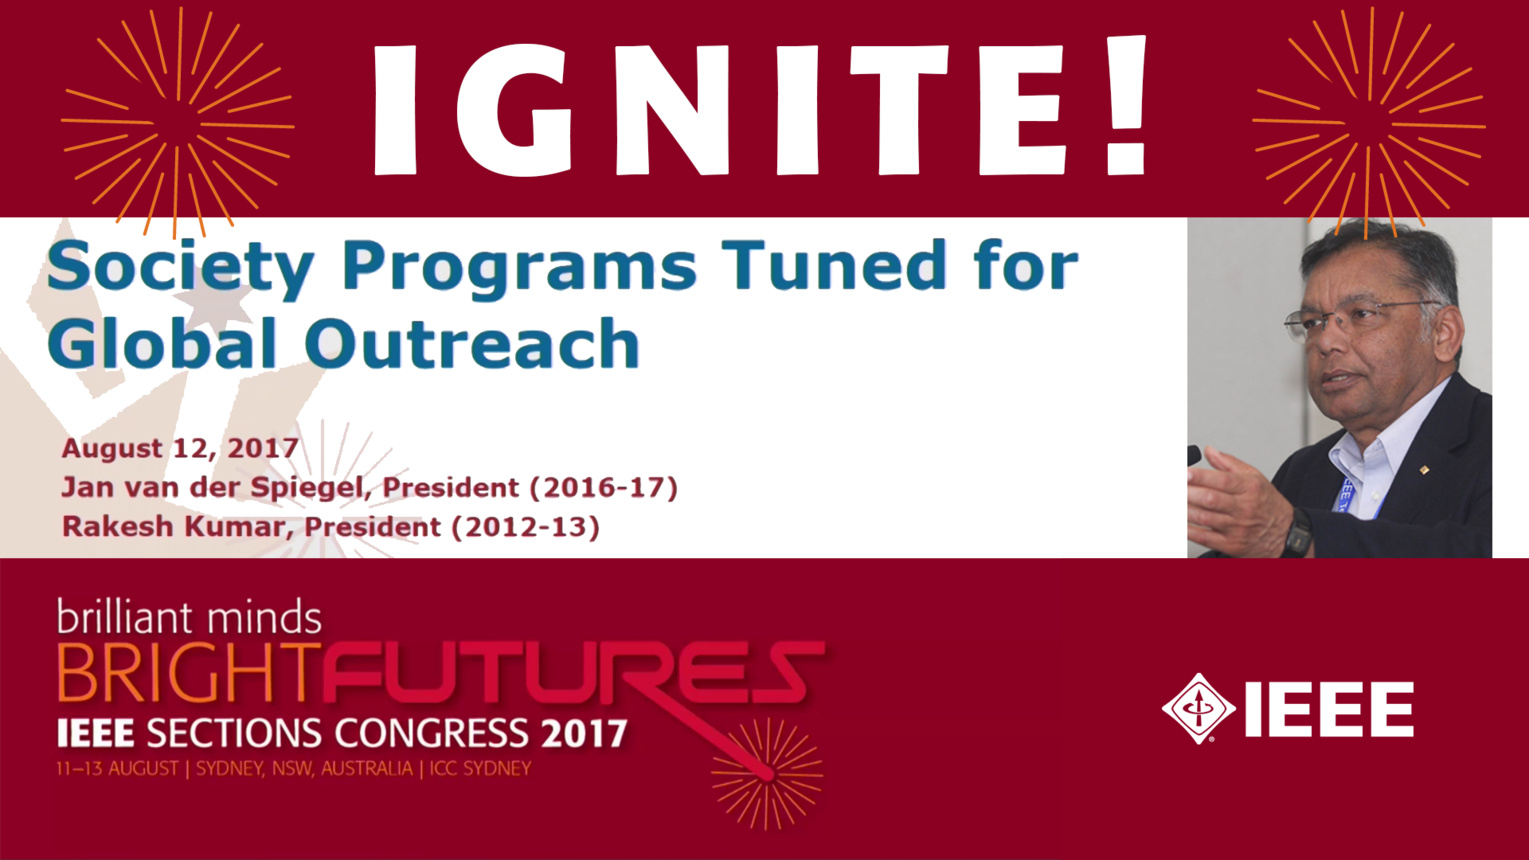 Society Programs Tuned for Global Outreach - Rakesh Kumar - Ignite: Sections Congress 2017